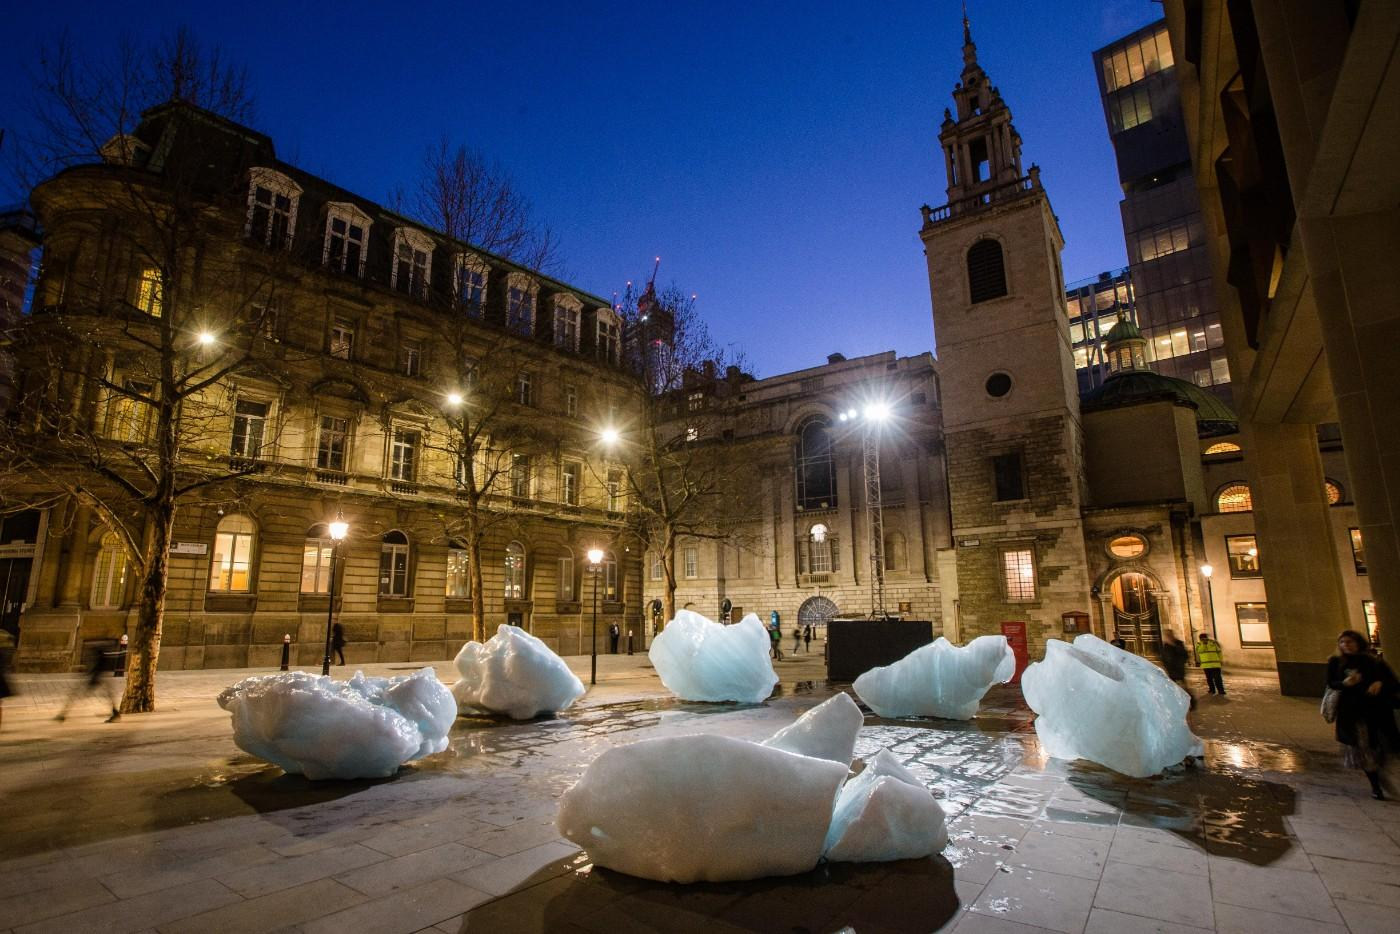 Ice Watch by Olafur Eliasson and Minik Rosing